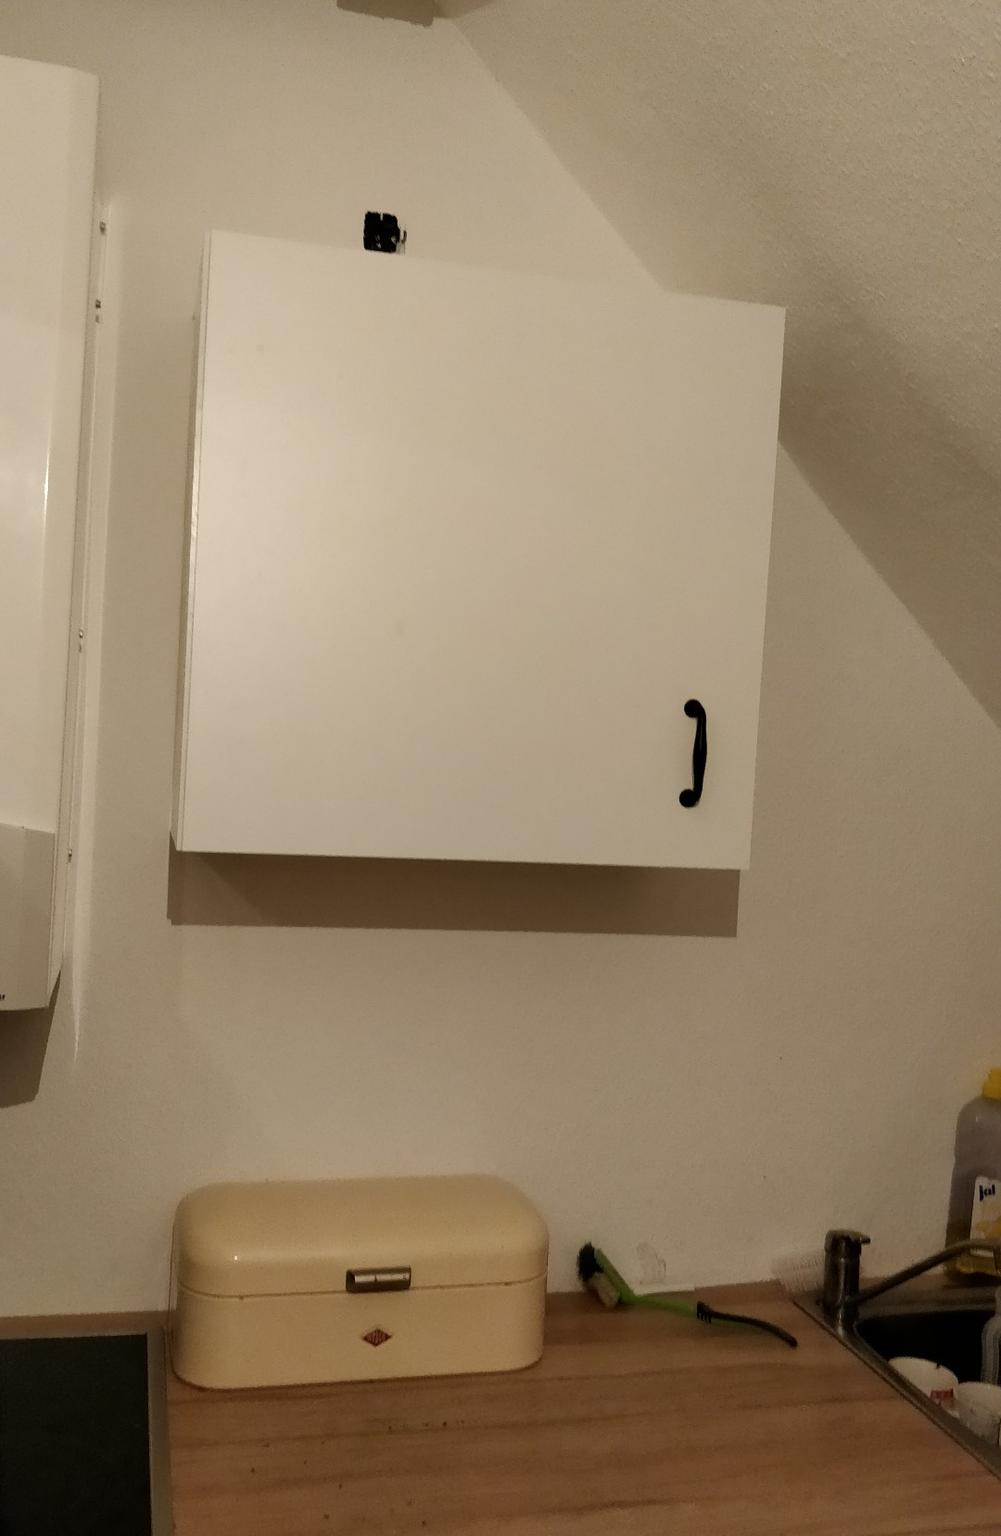 Ikea Kuche Knoxhult In 56182 Urbar For Free For Sale Shpock